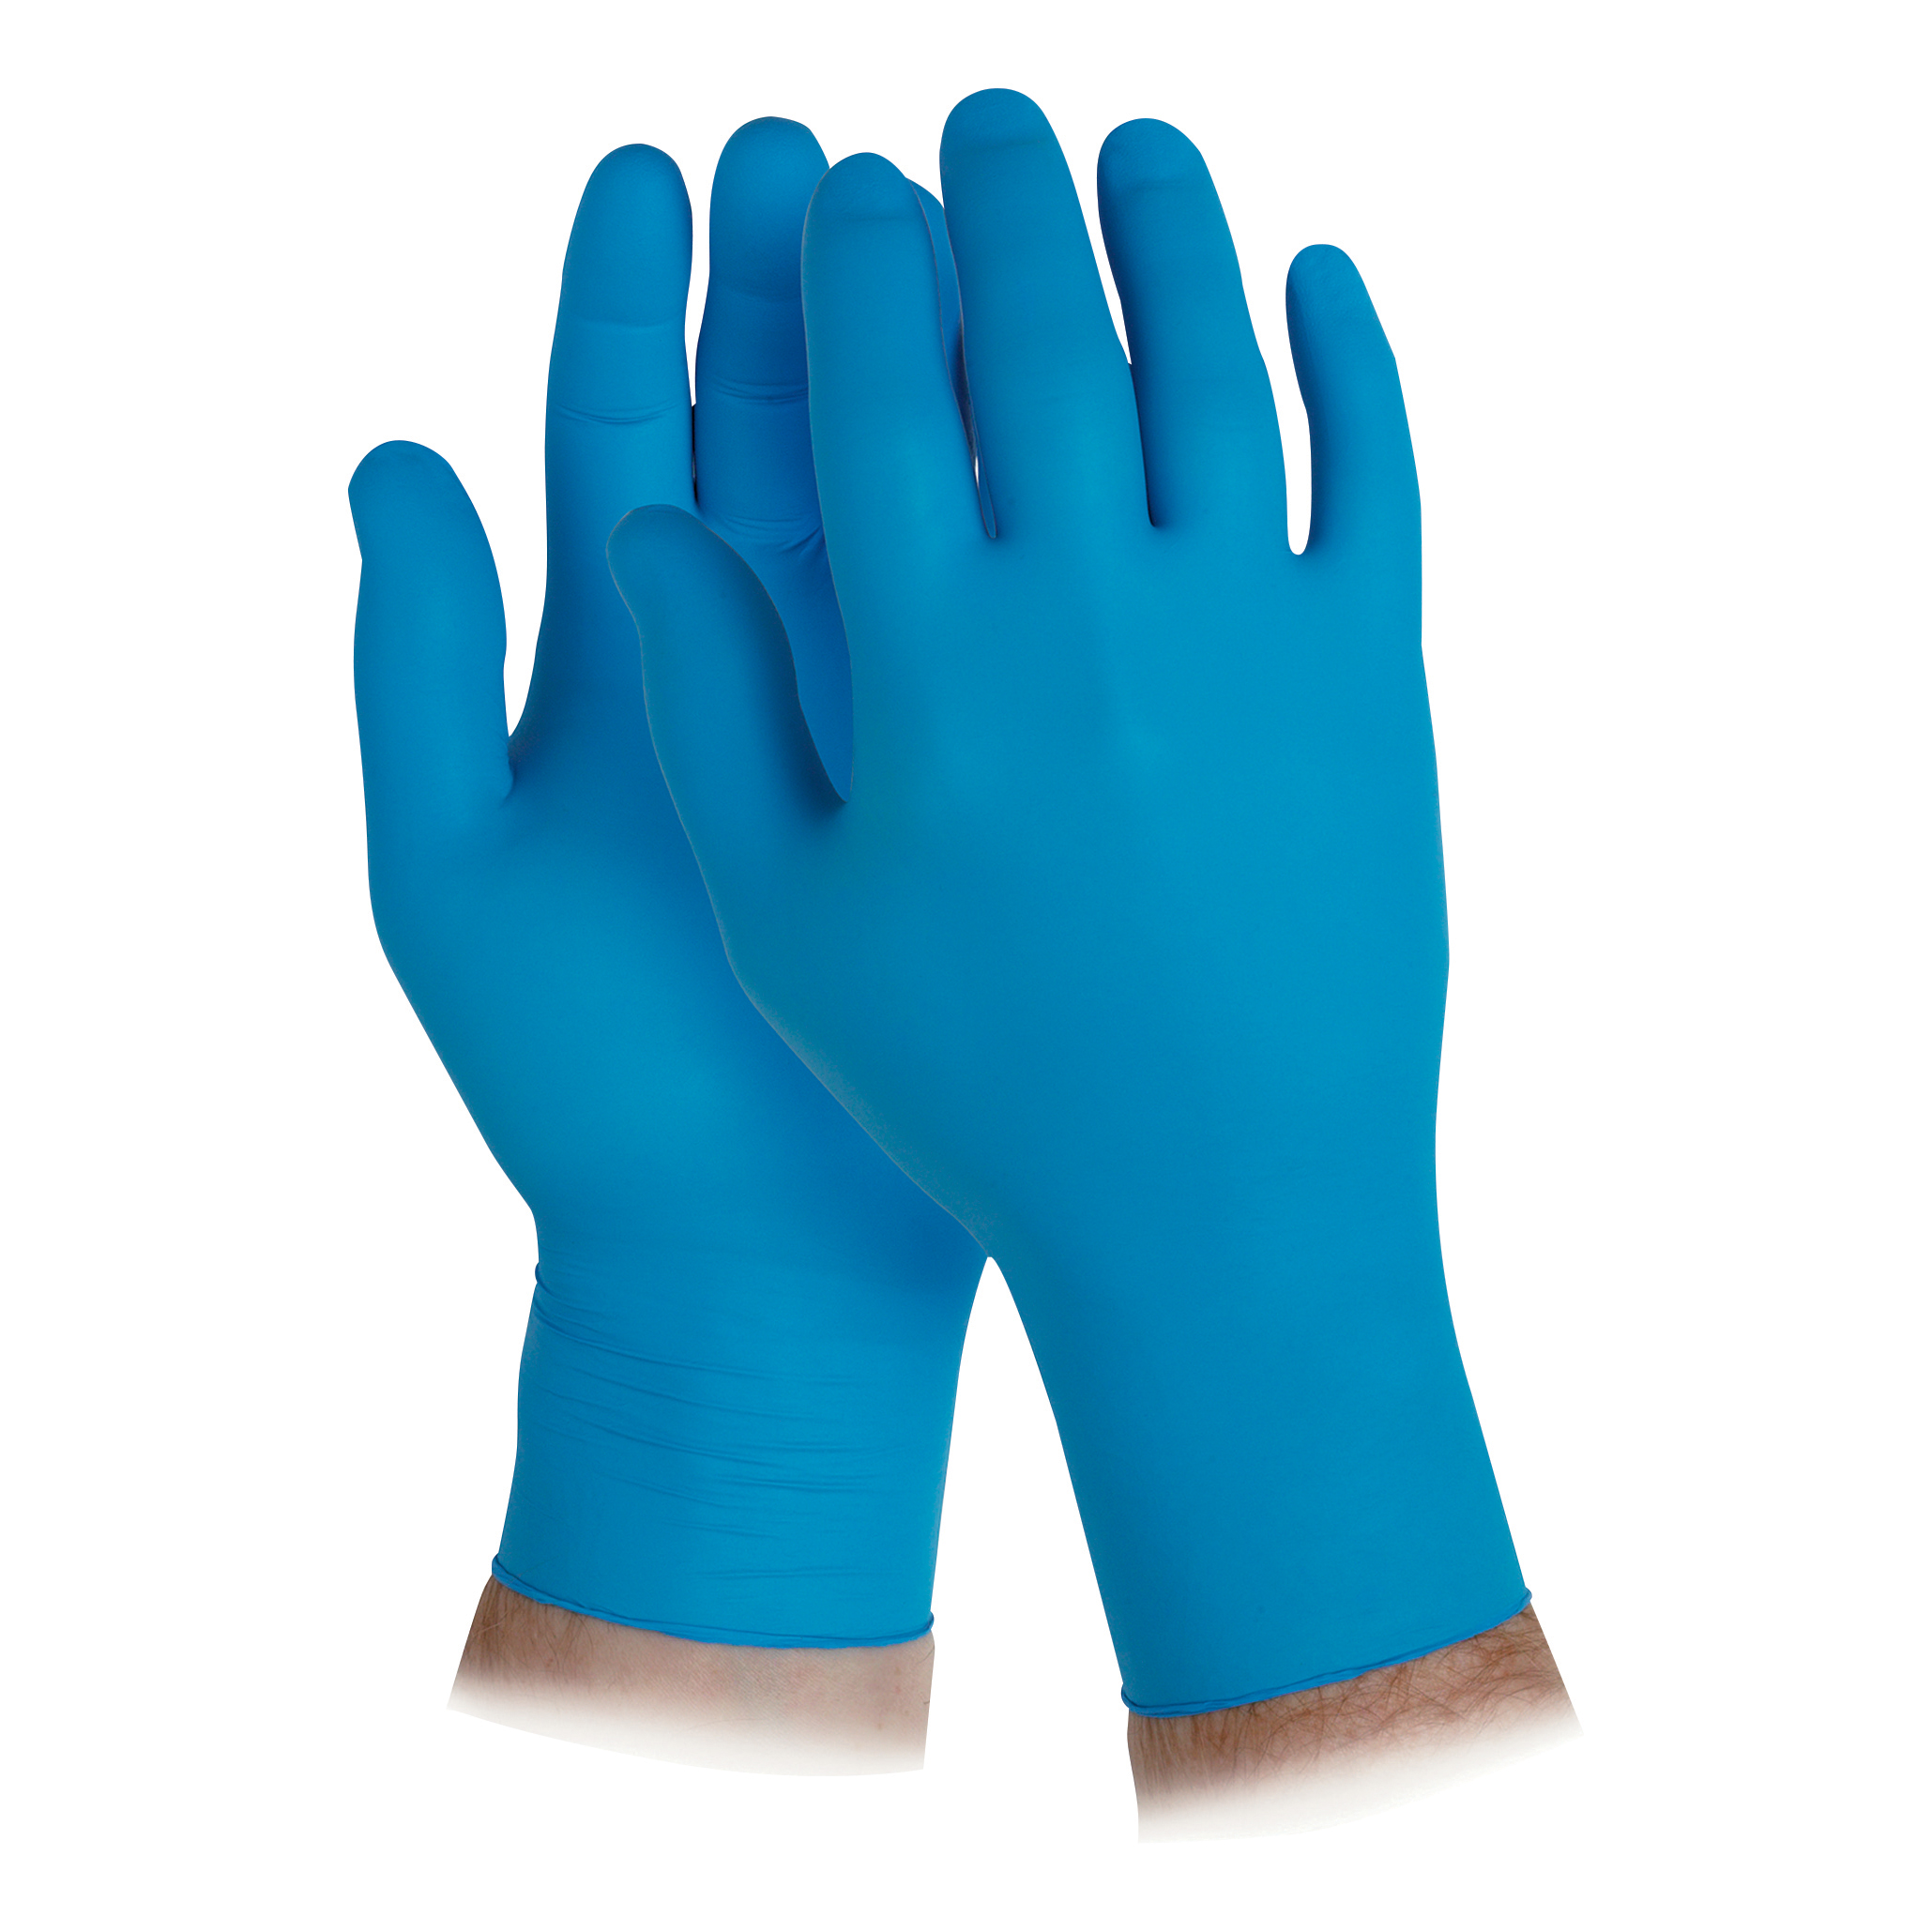 KleenGuard G10 Nitrile Gloves Powder Free Natural Rubber Medium Arctic Blue Ref 90097 Box 200